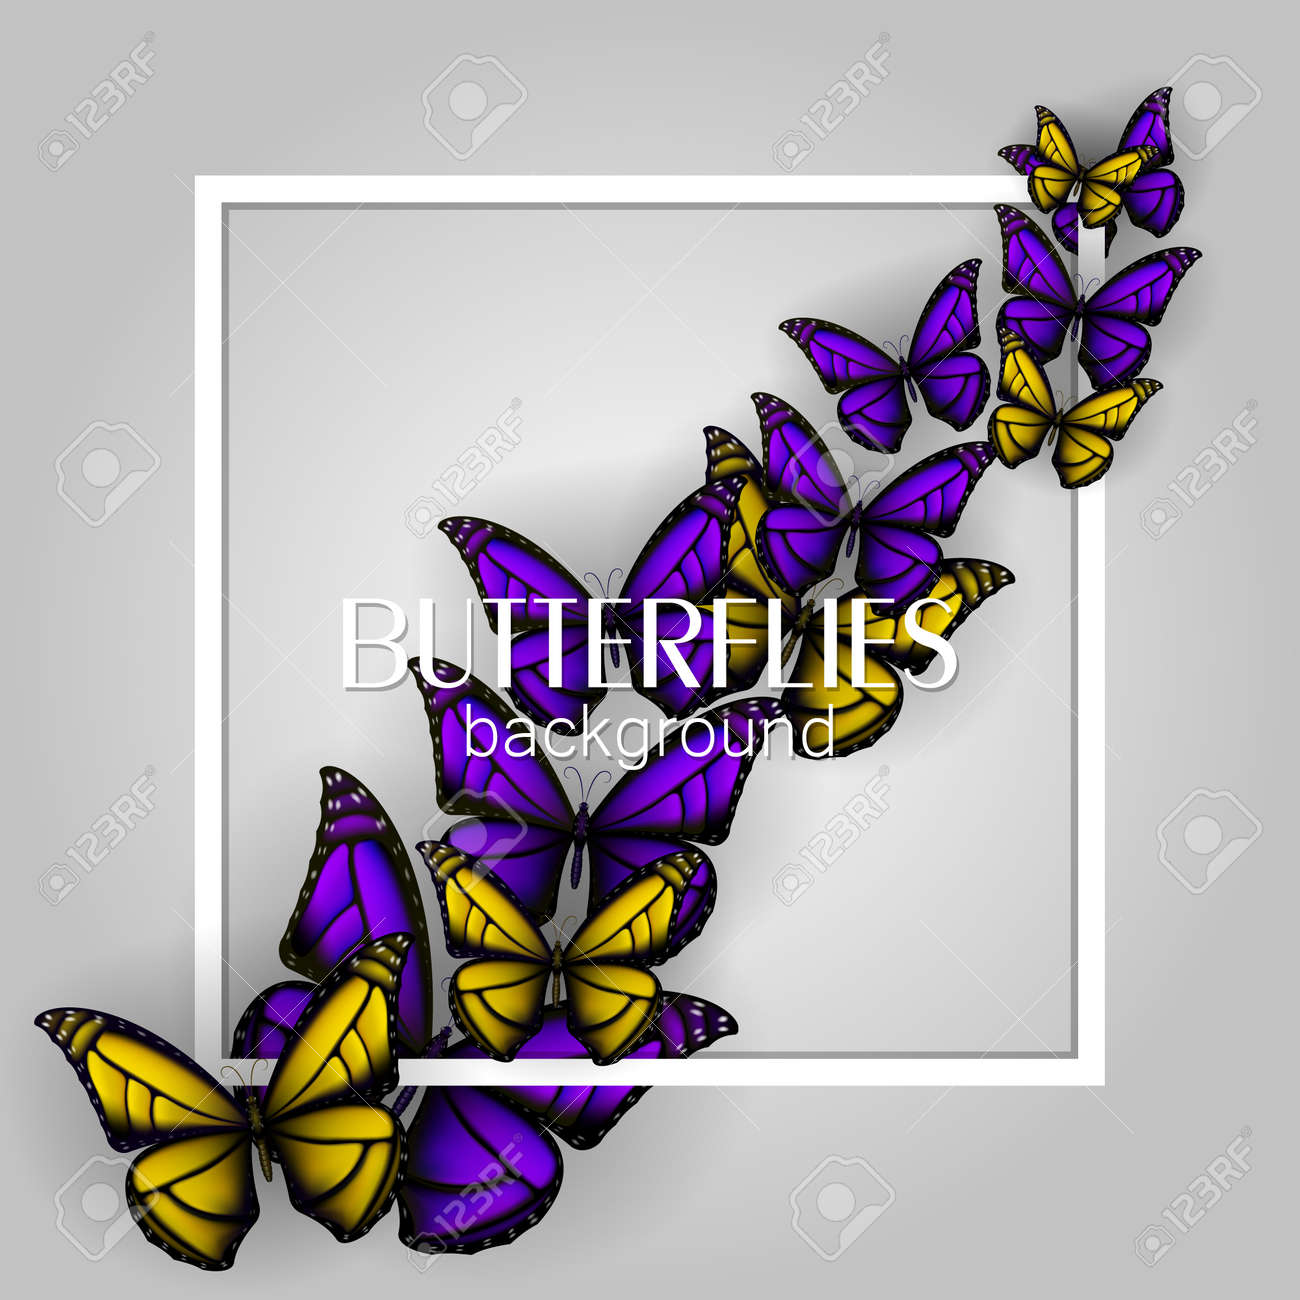 Square white frame banner with colorful butterflies light background - 114806841